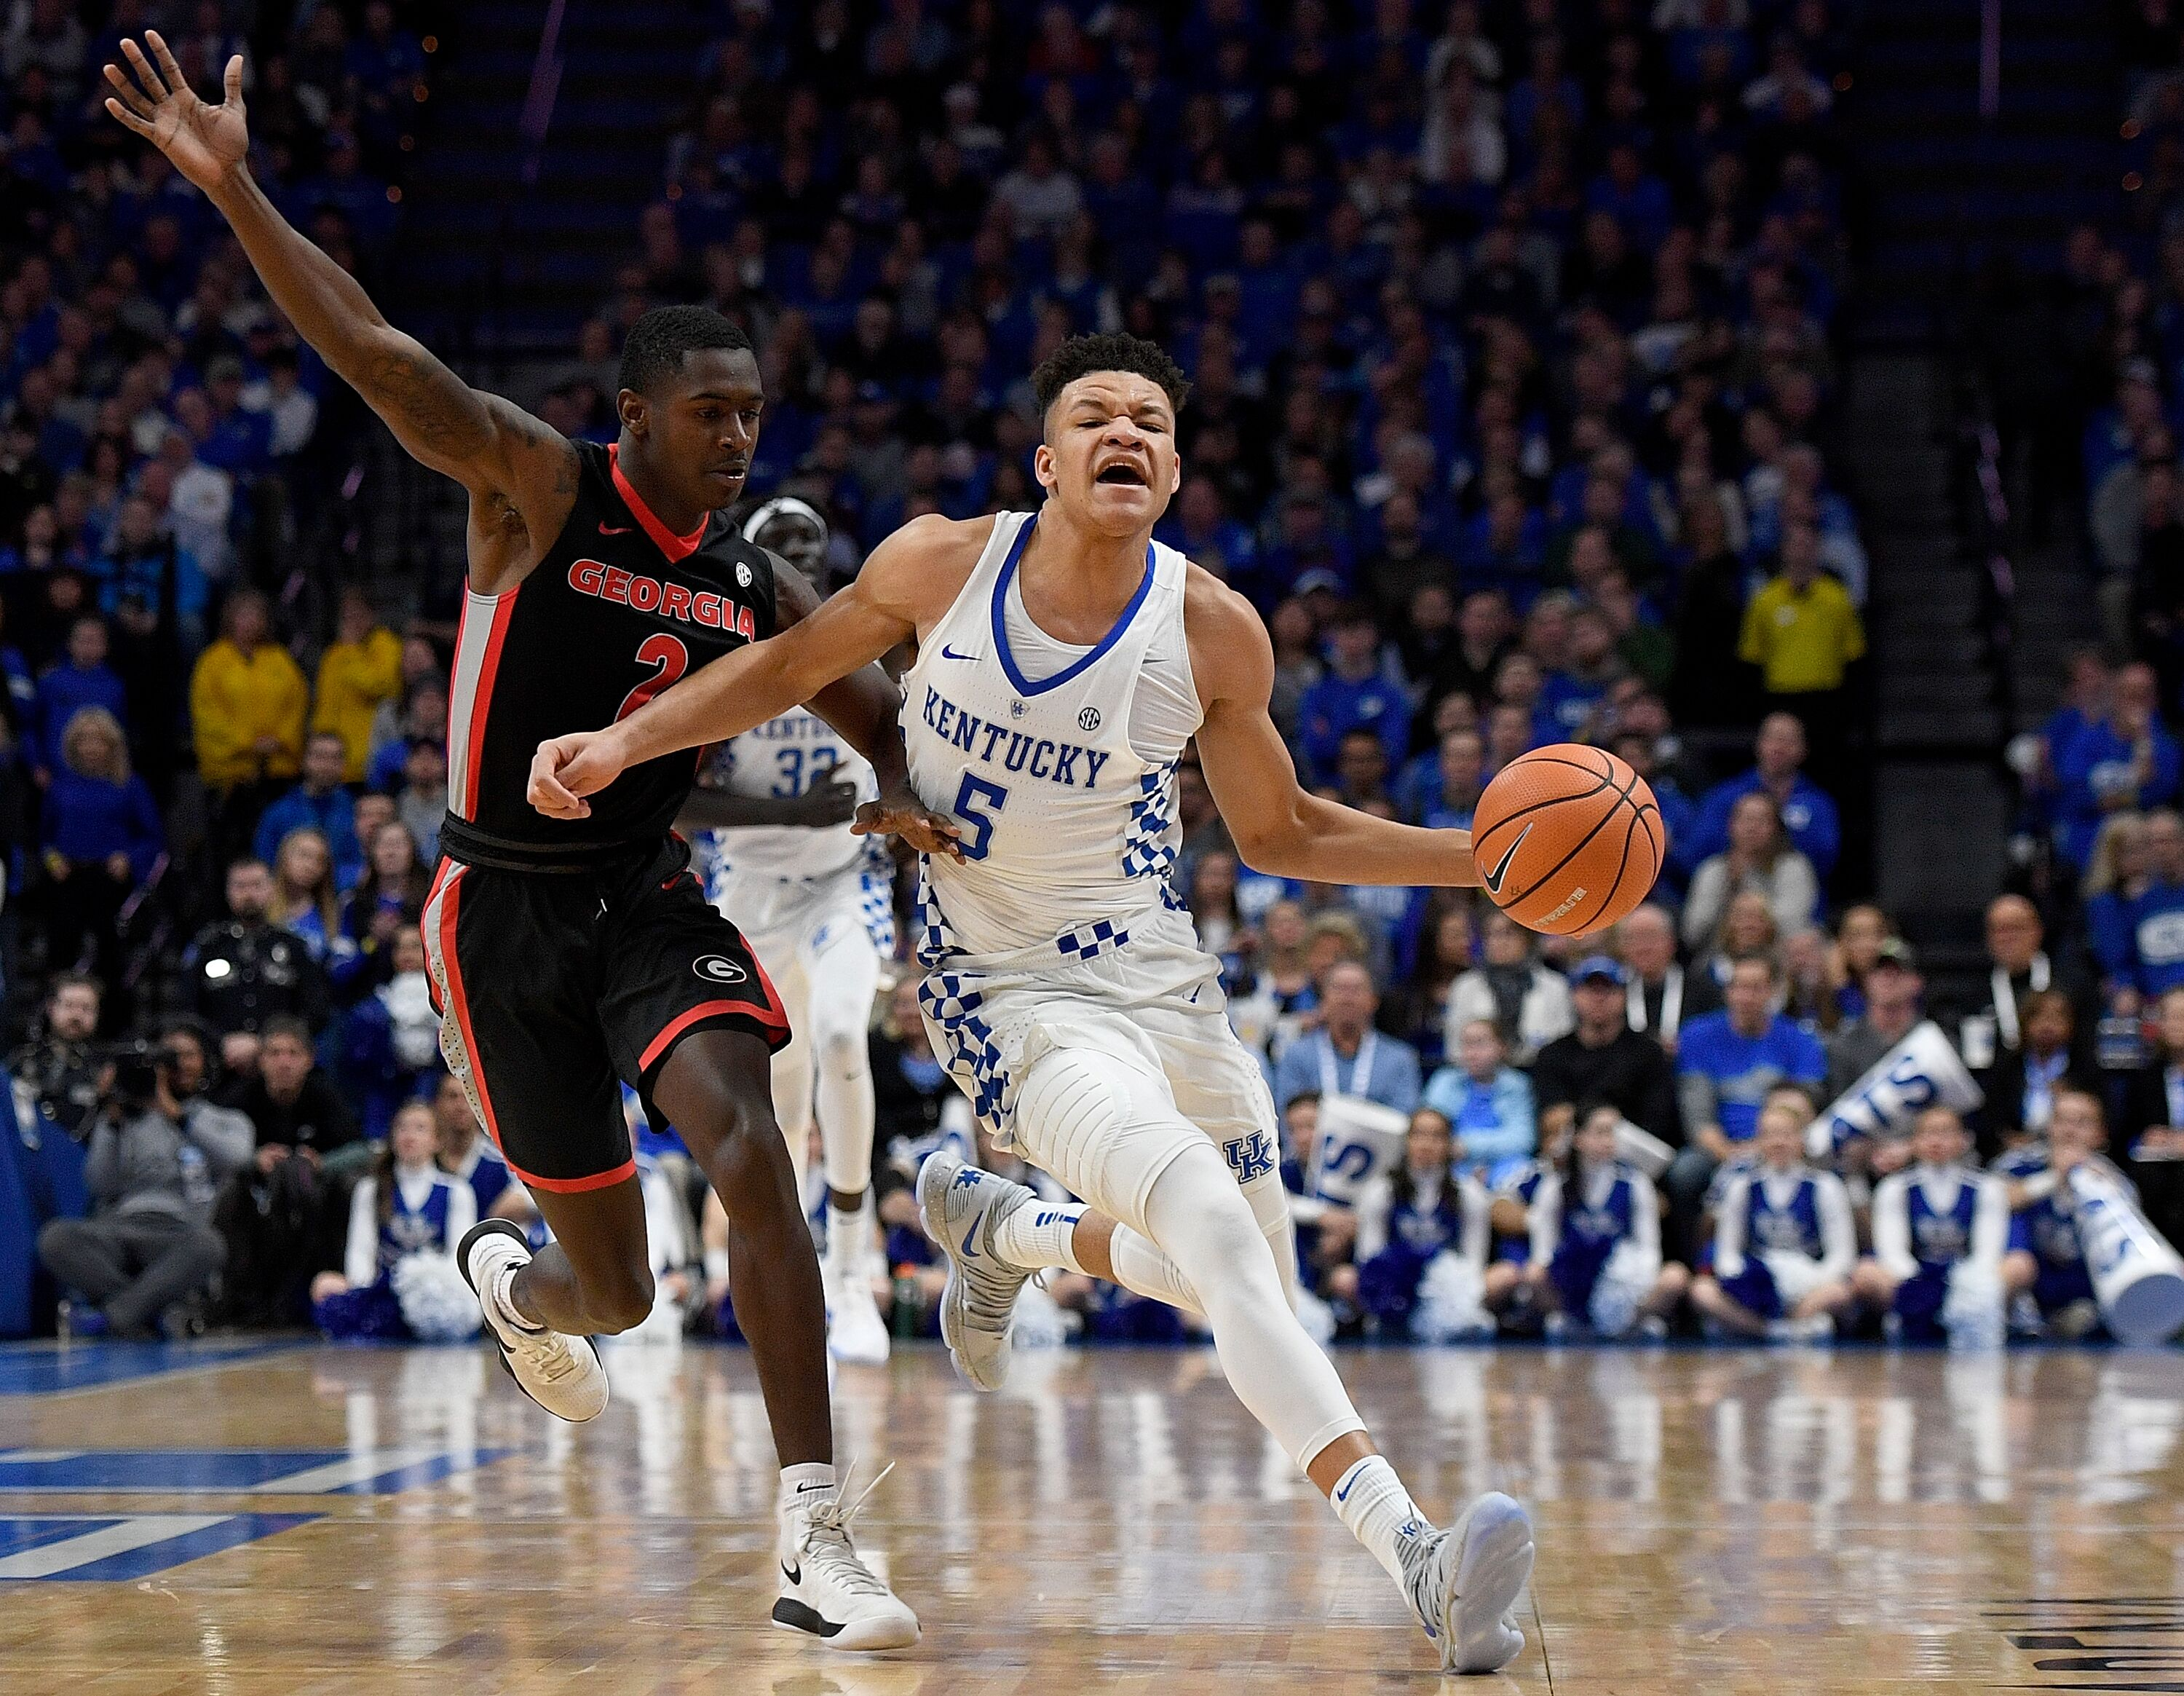 Kentucky Basketball: What's Wrong With Kevin Knox?